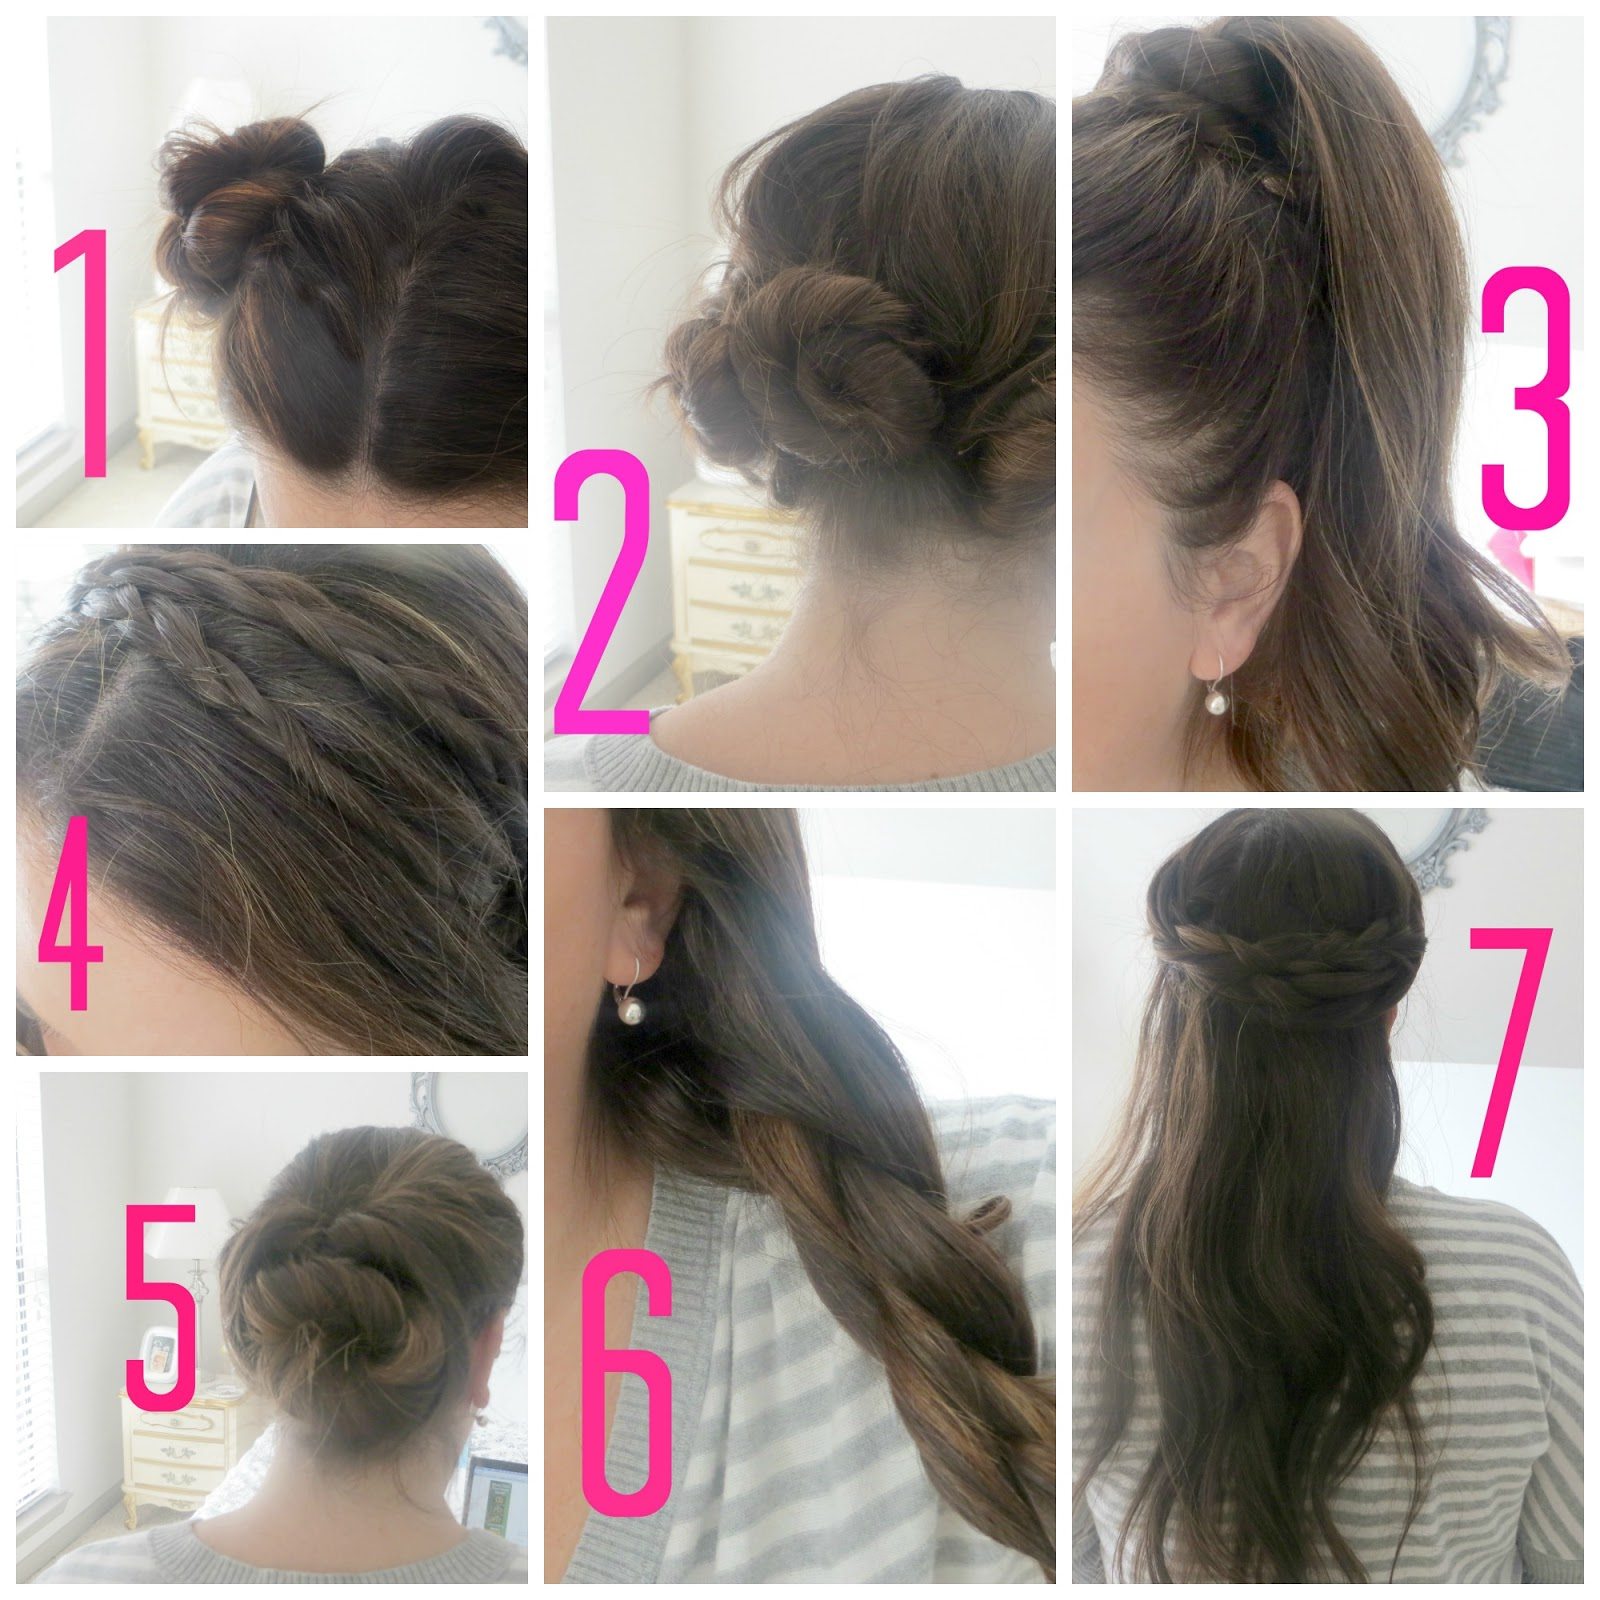 Quick And Easy Hairstyles For School Step By Step Imagesindigobloomdesigns